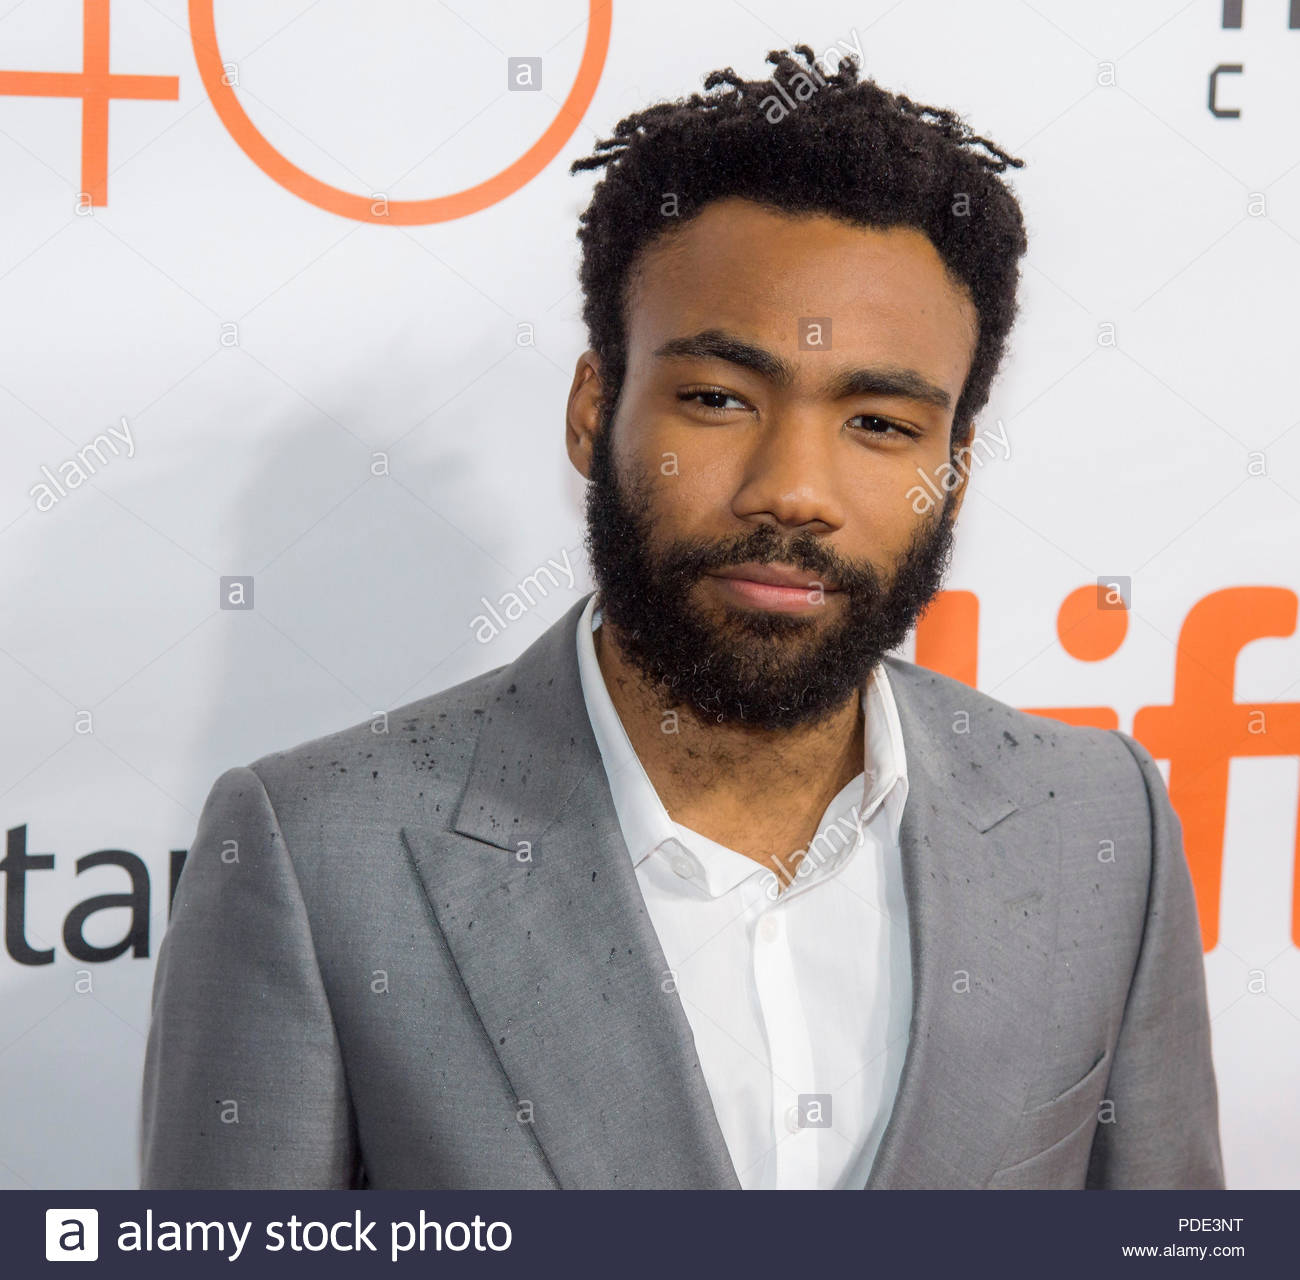 """CANADA Toronto -- 11 Sep 2015 -- Actor Donald Glover attends the world premiere for 'The Martian"""" on day two of the Toronto International Film Festival at the Roy Thomson Hall, Friday, Sept. 11, 2015 in Toronto. NASA scientists and engineers served as technical consultants on the film. The movie portrays a realistic view of the climate and topography of Mars, based on NASA data, and some of the challenges NASA faces as we prepare for human exploration of the Red Planet in the 2030s -- Picture by Bill Ingalls/Atlas Photo Archive/NASA - Stock Image"""